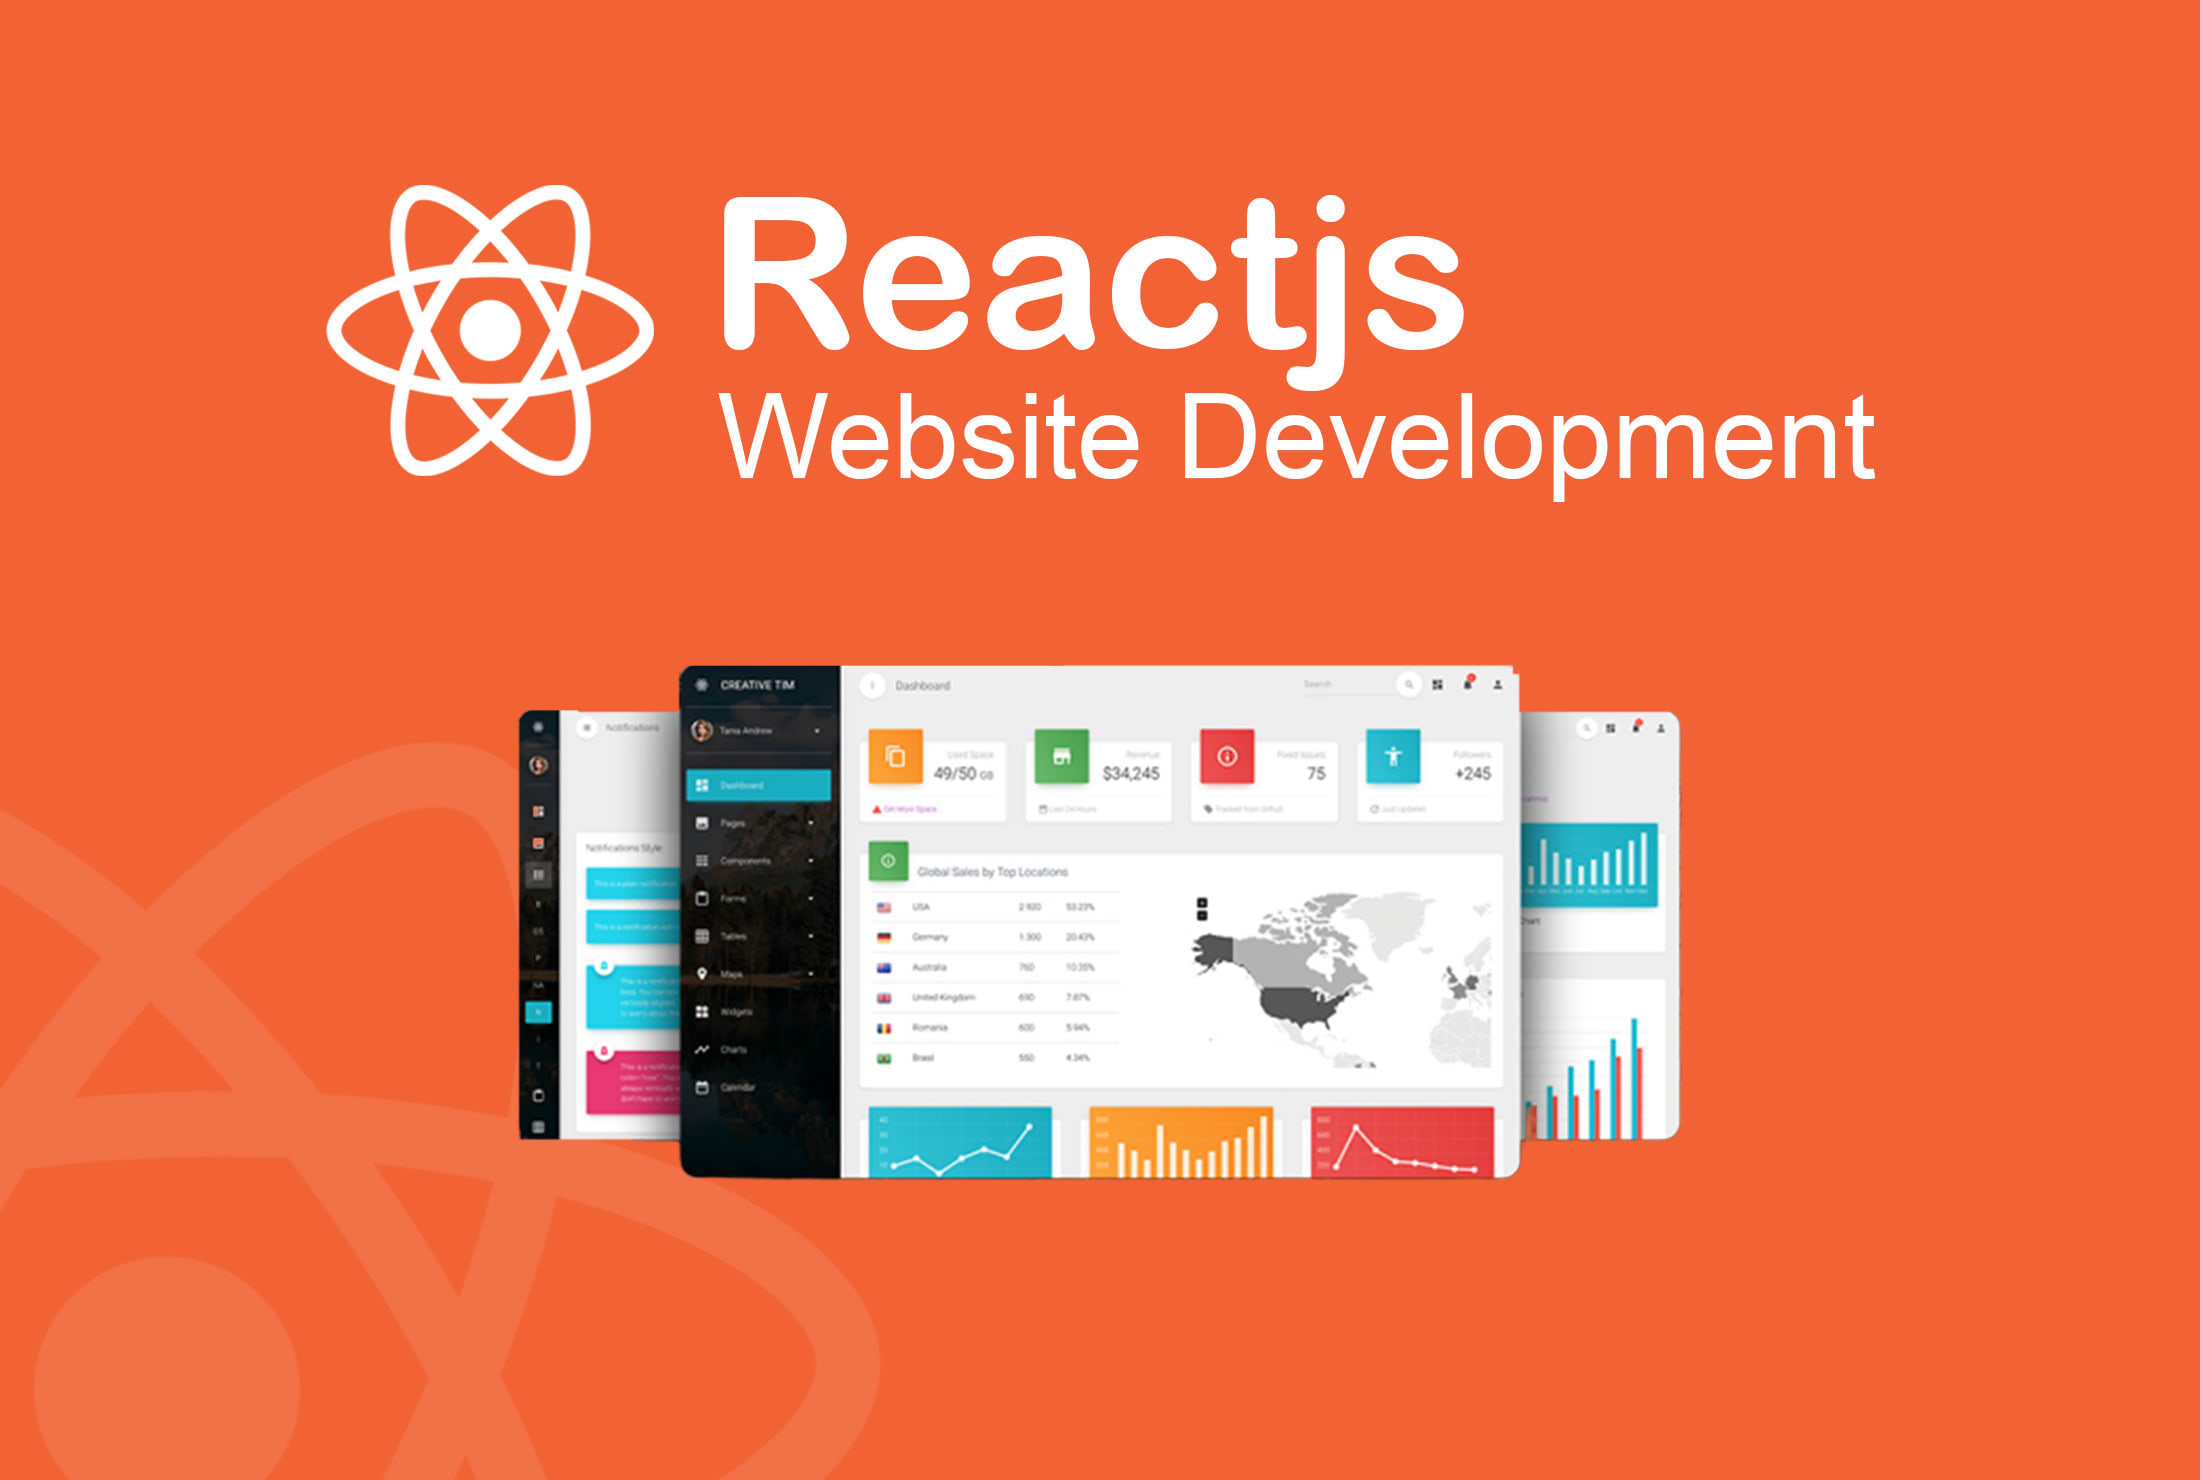 Be Your React Js Javascript Developer For Web App In Reactjs By Nauman440